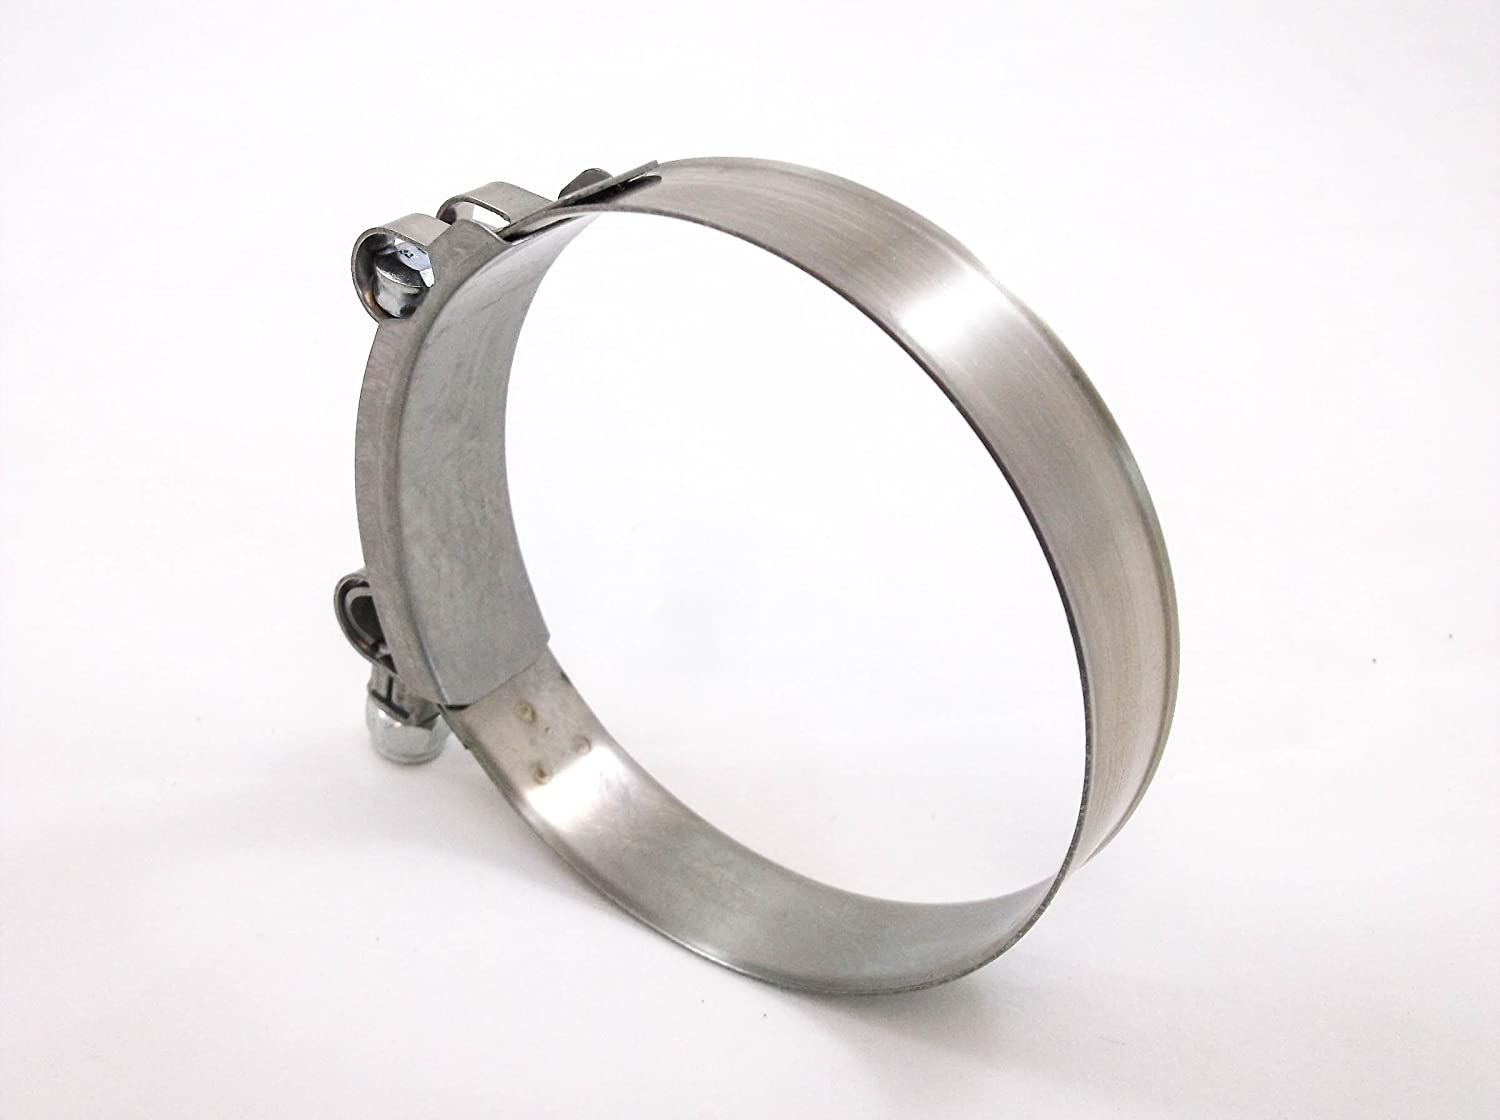 1x Premium 304 Stainless Steel T-Bolt Turbo Hose Clamp 3.5 Inches 82-90mm